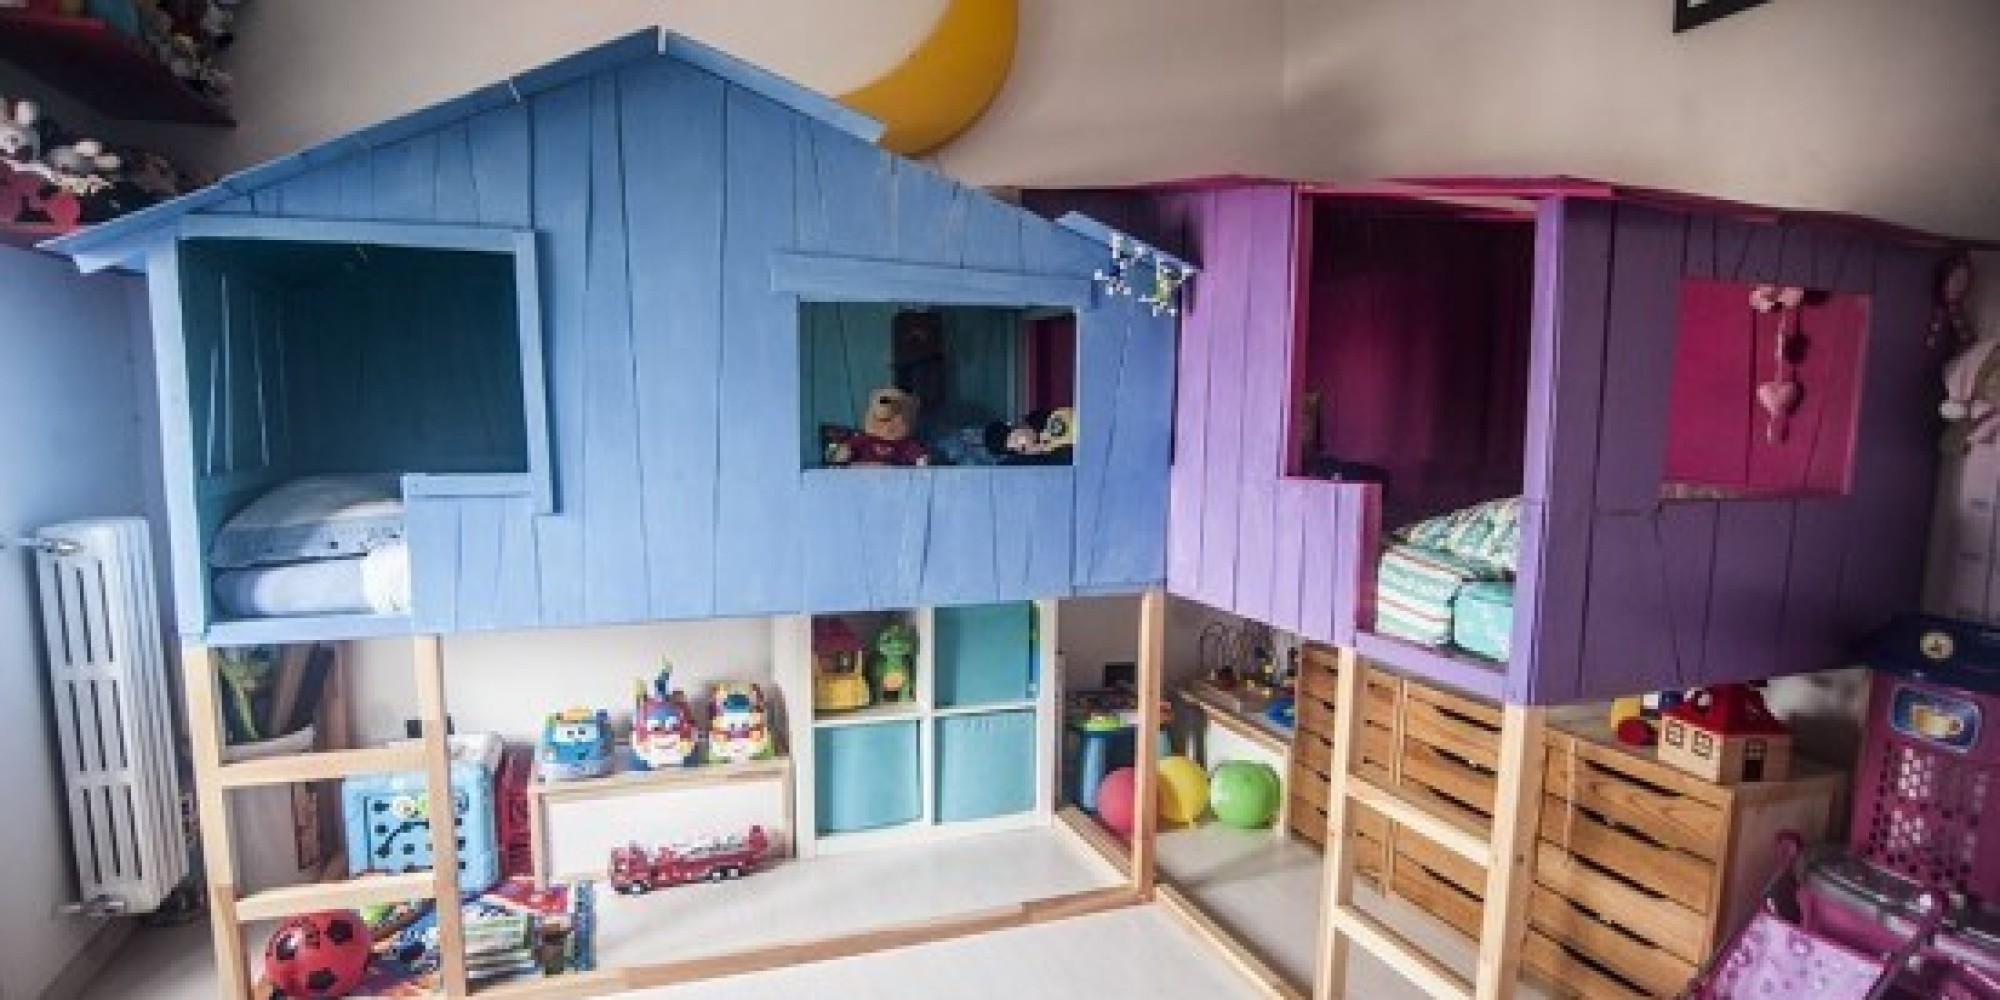 ikea hacks these cool toddler beds will make your kids love bedtime. Black Bedroom Furniture Sets. Home Design Ideas